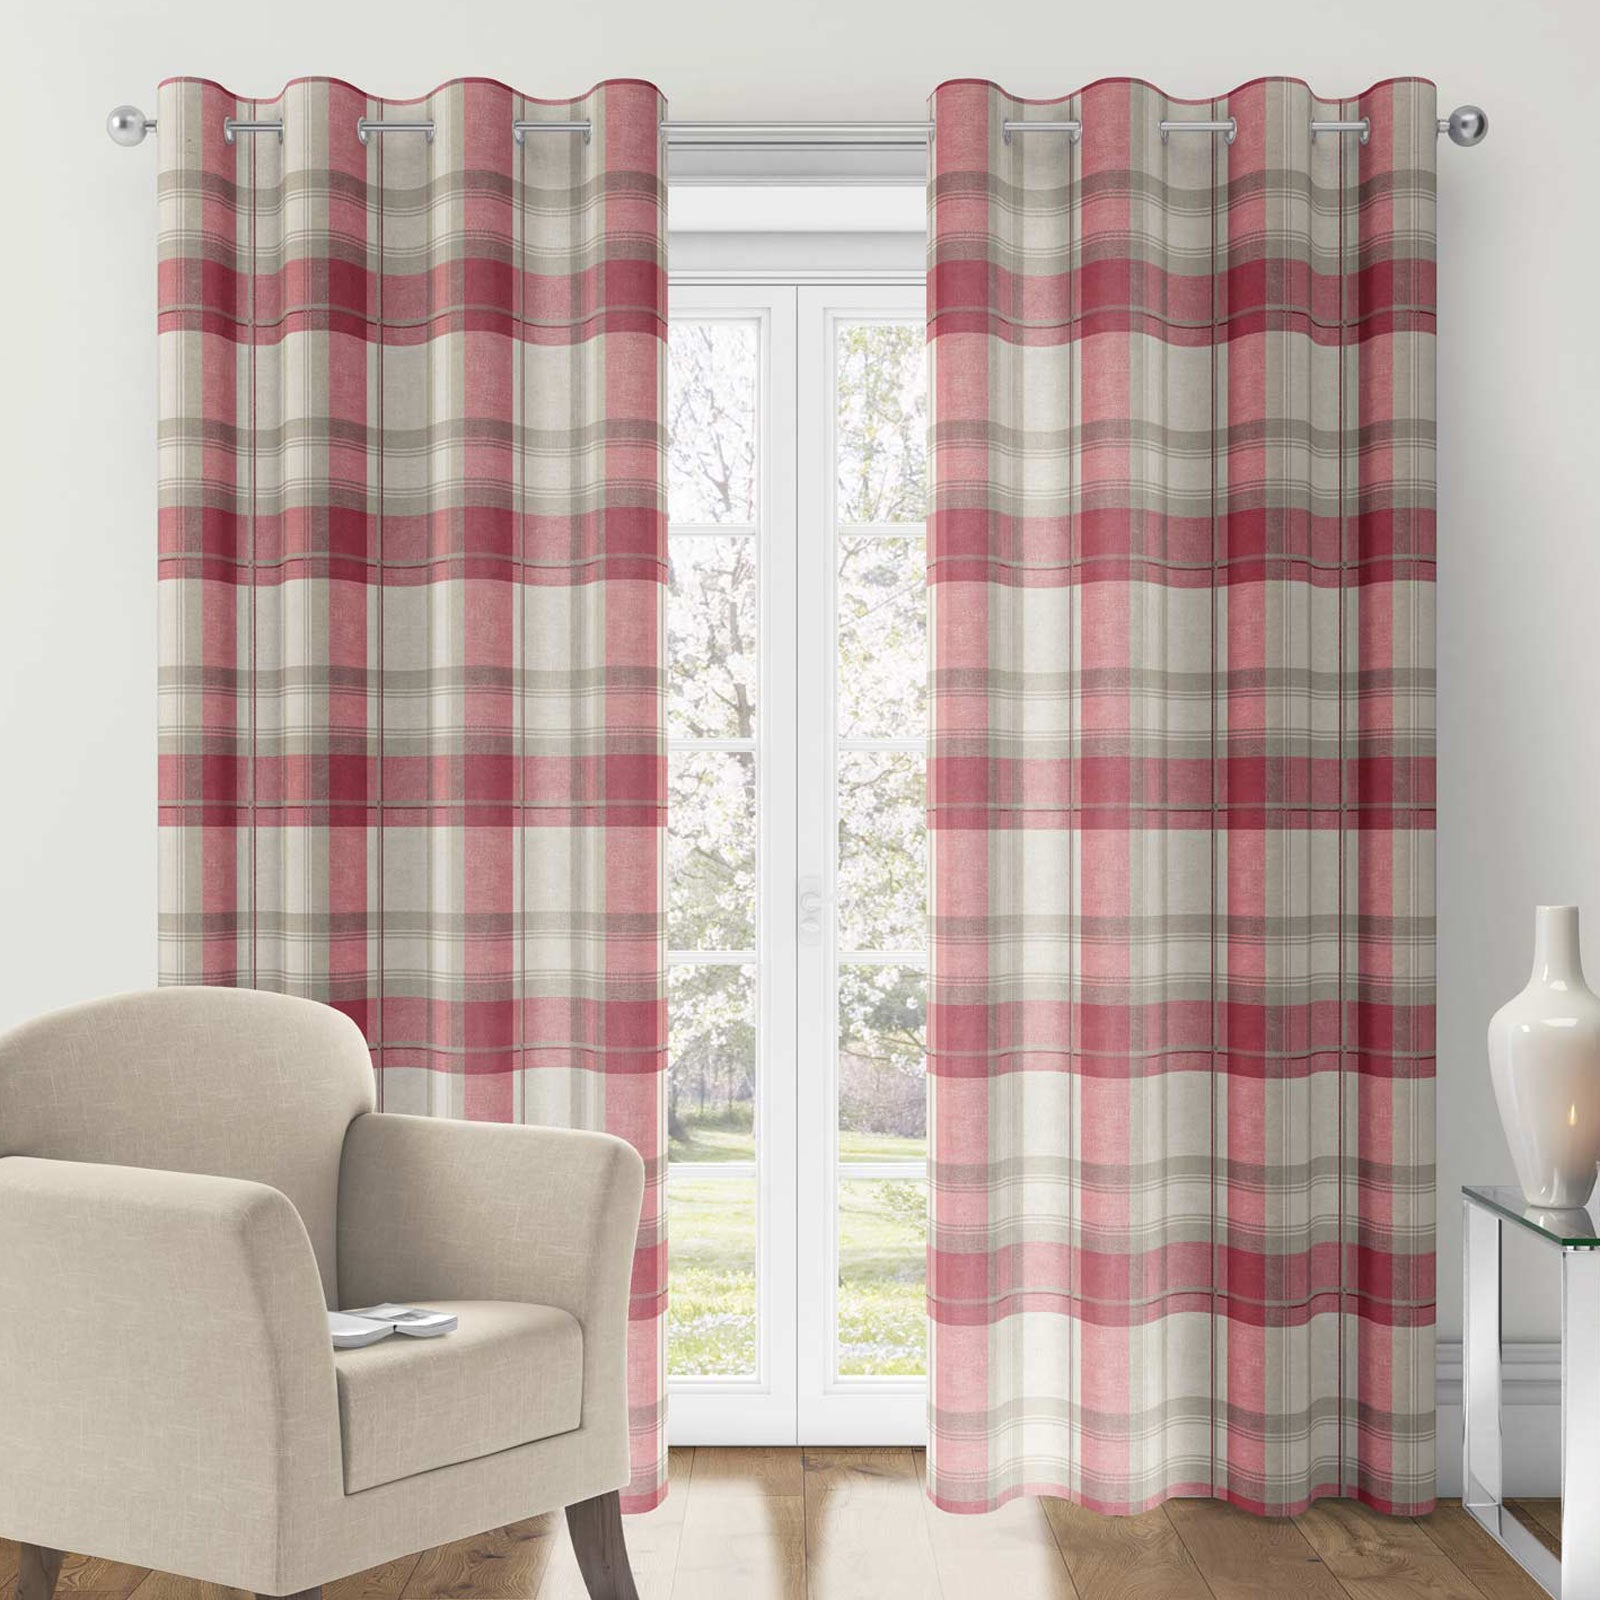 Ideal Textiles Specialists In Curtains Bedding